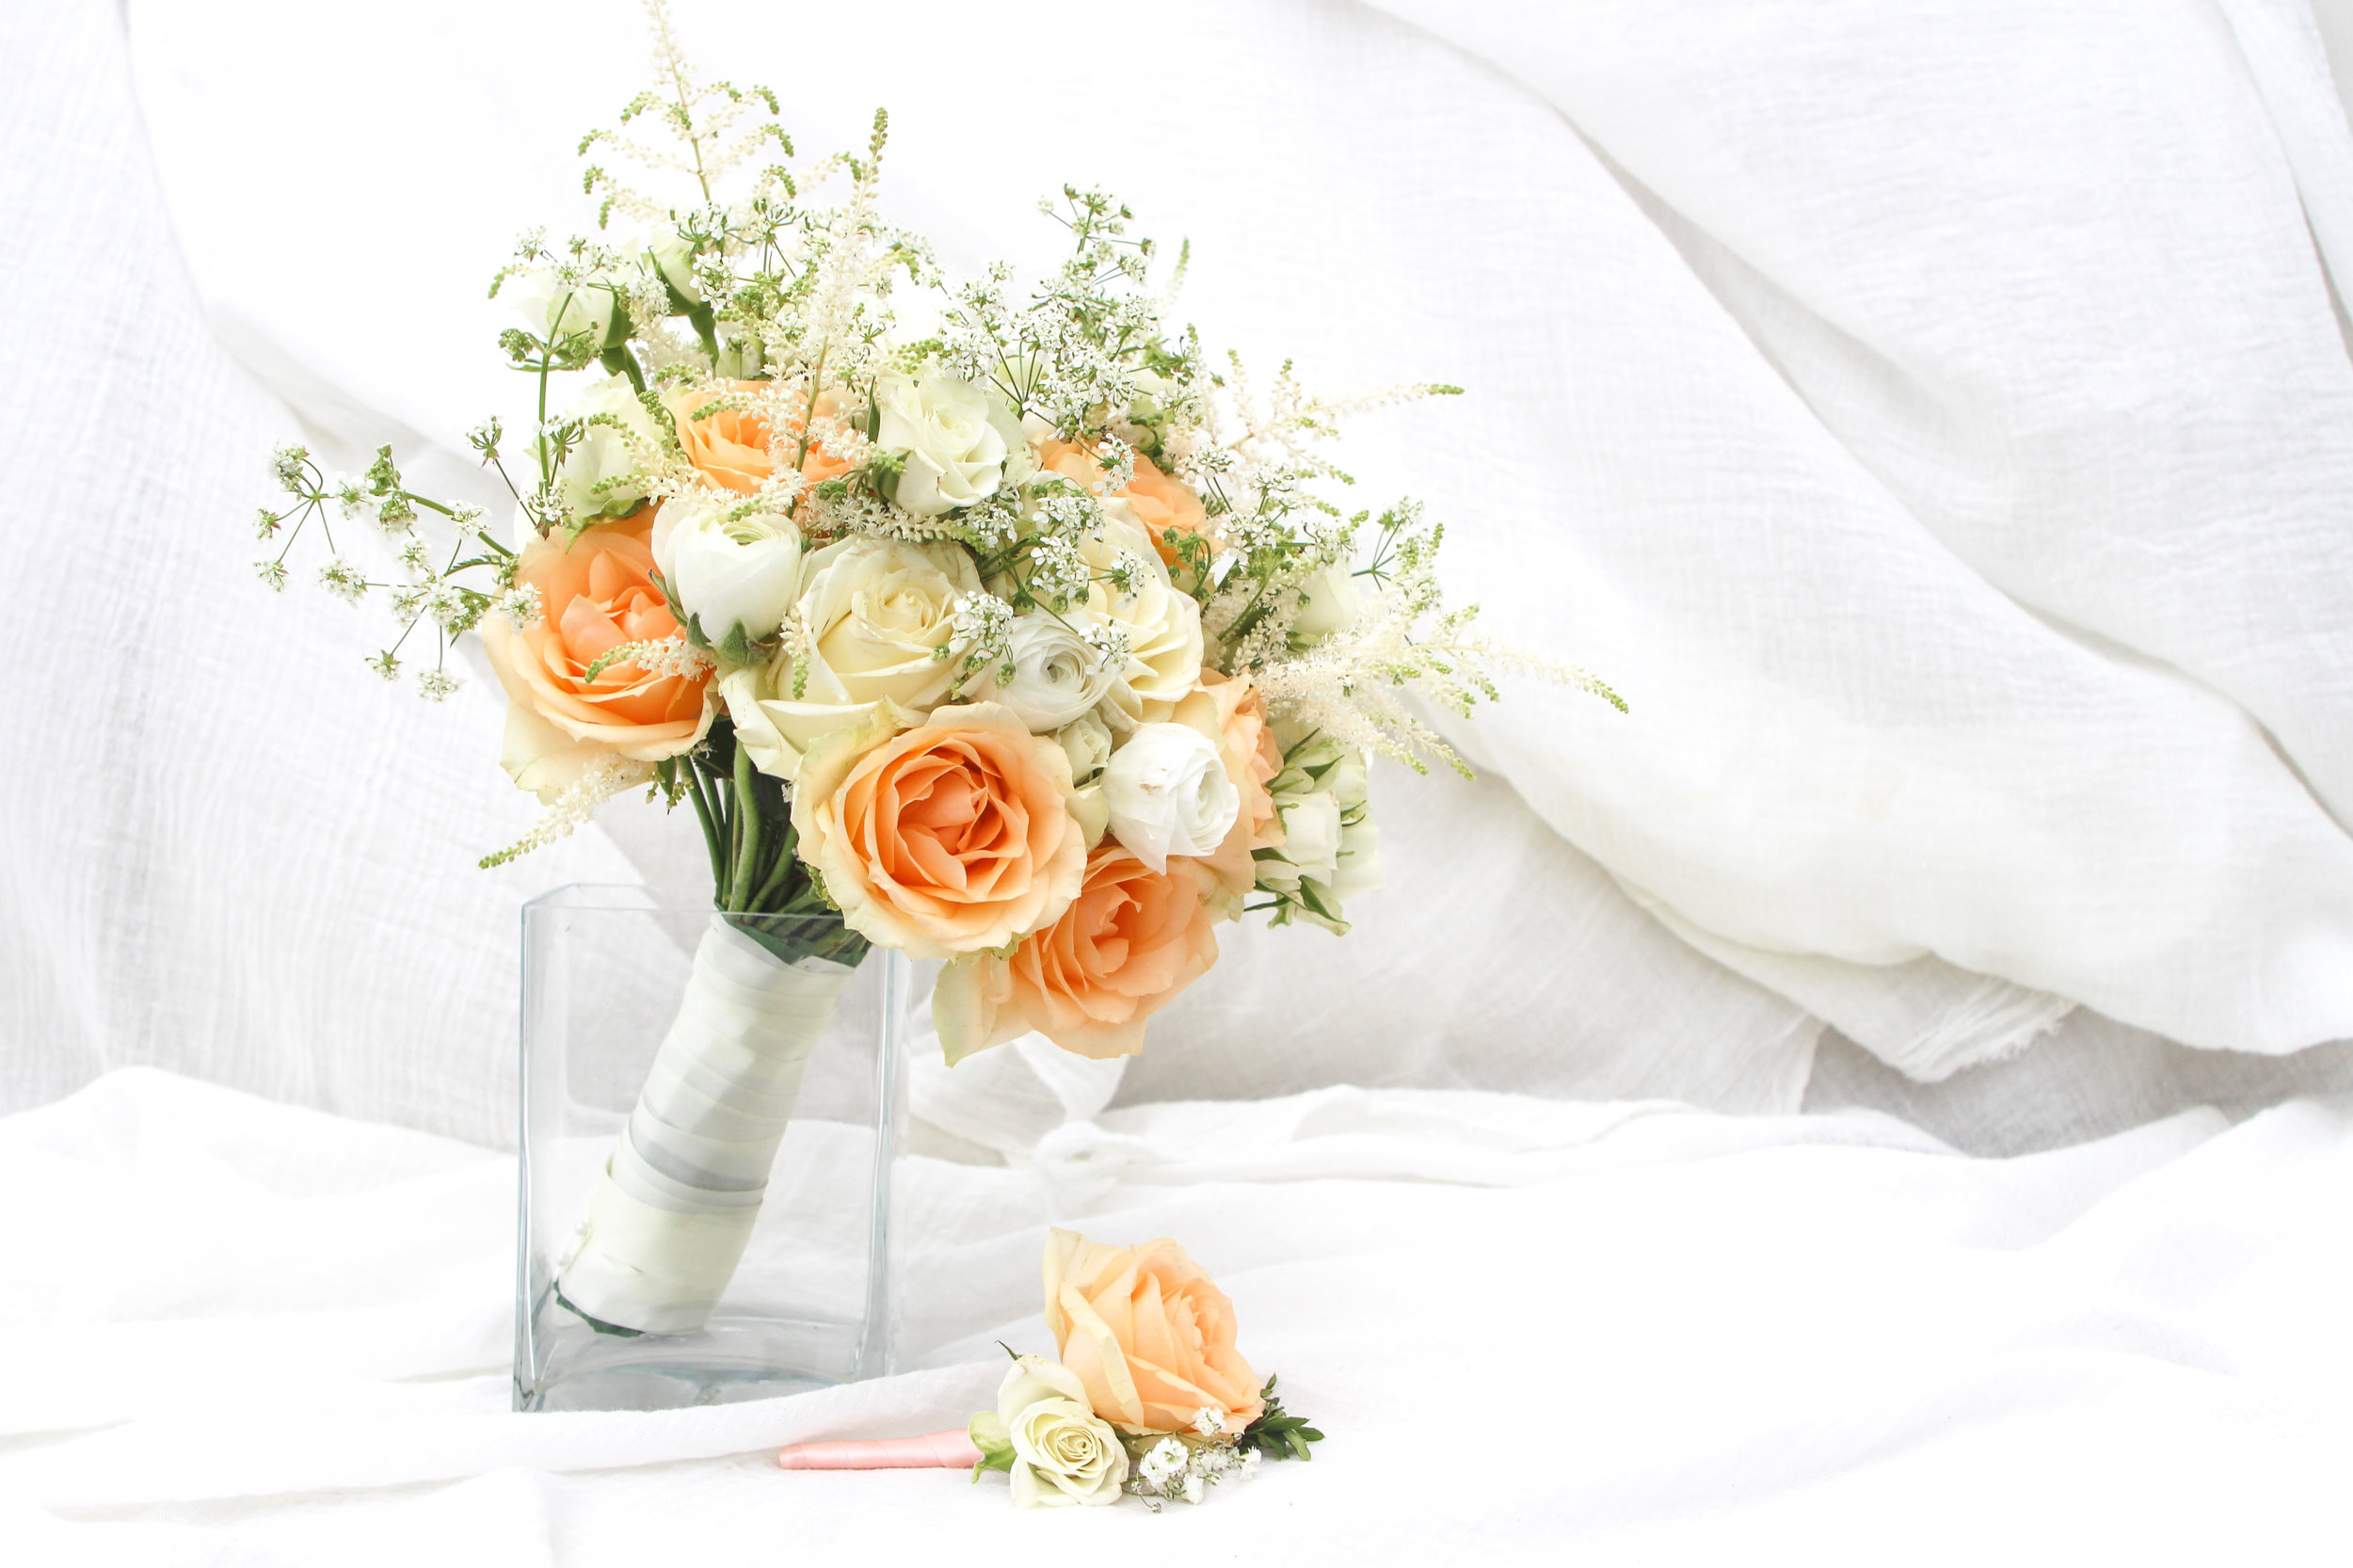 apricot roses spray roses queen annes lace bridal posy and button hole.jpg